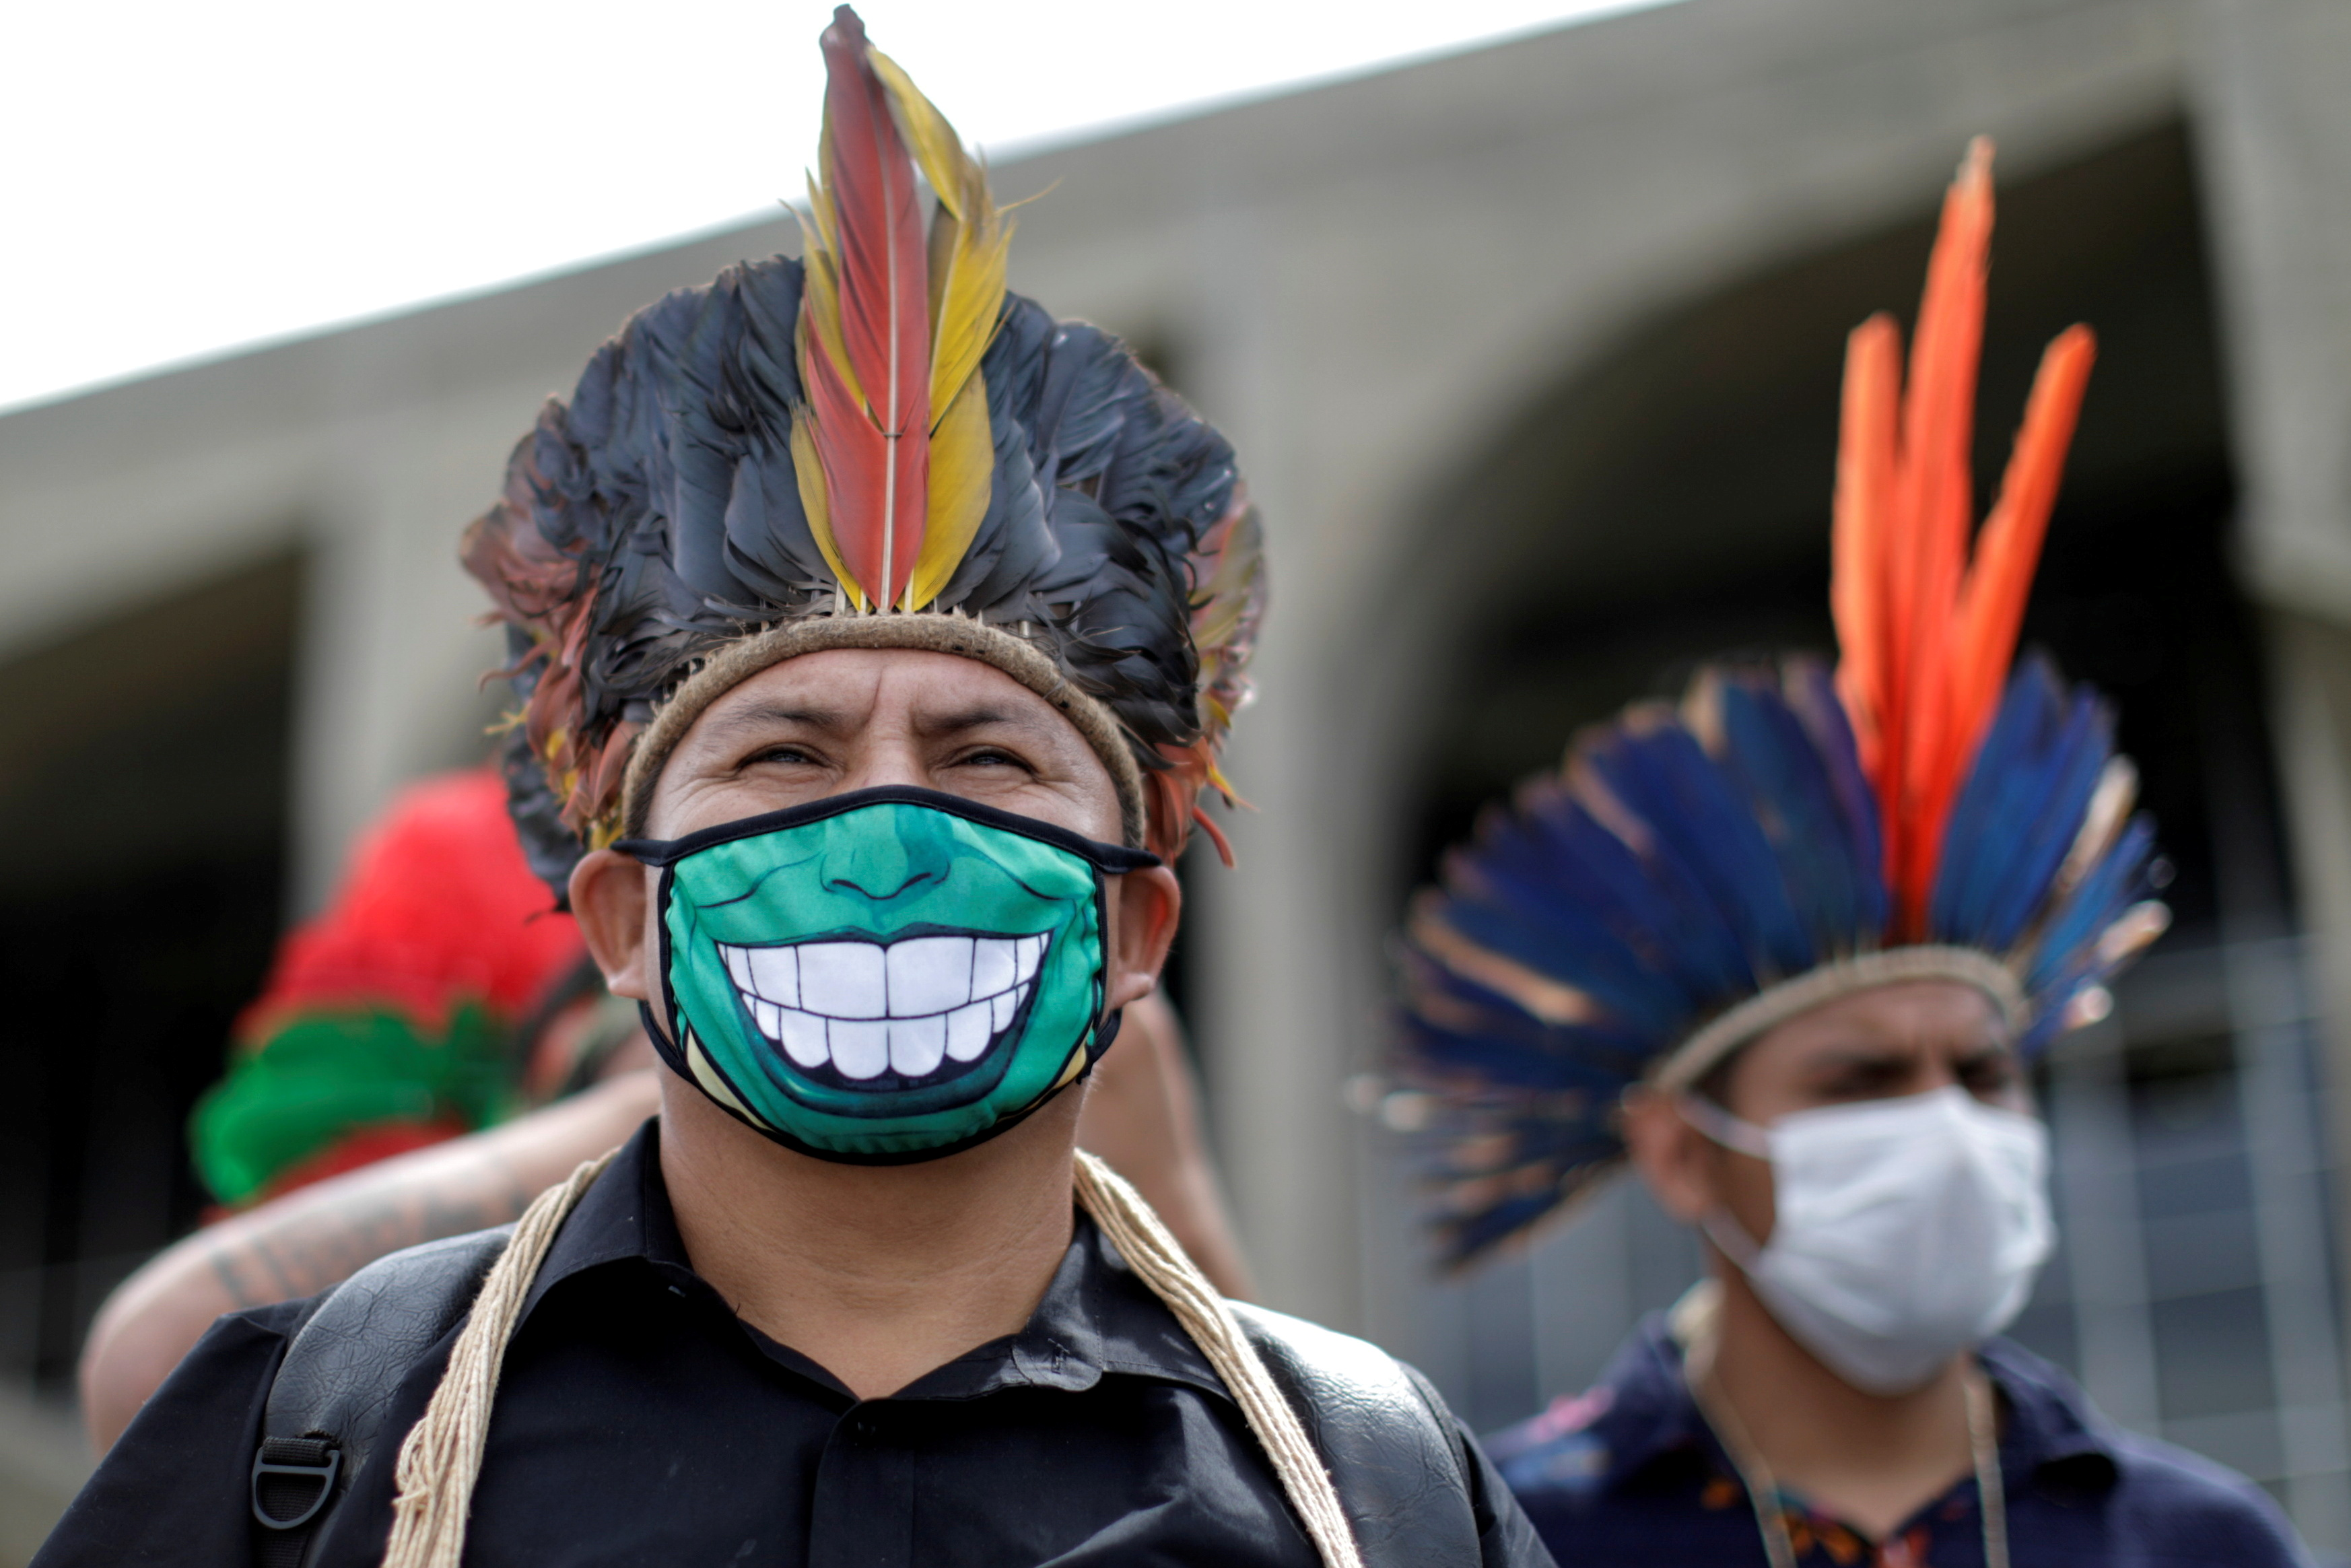 Indigenous people of several ethnic groups protest calling for the demarcation of their lands and the resignation of the Minister of Environment, Ricardo Salles, in Brasilia, Brazil, April 20, 2021. REUTERS/Ueslei Marcelino/File Photo